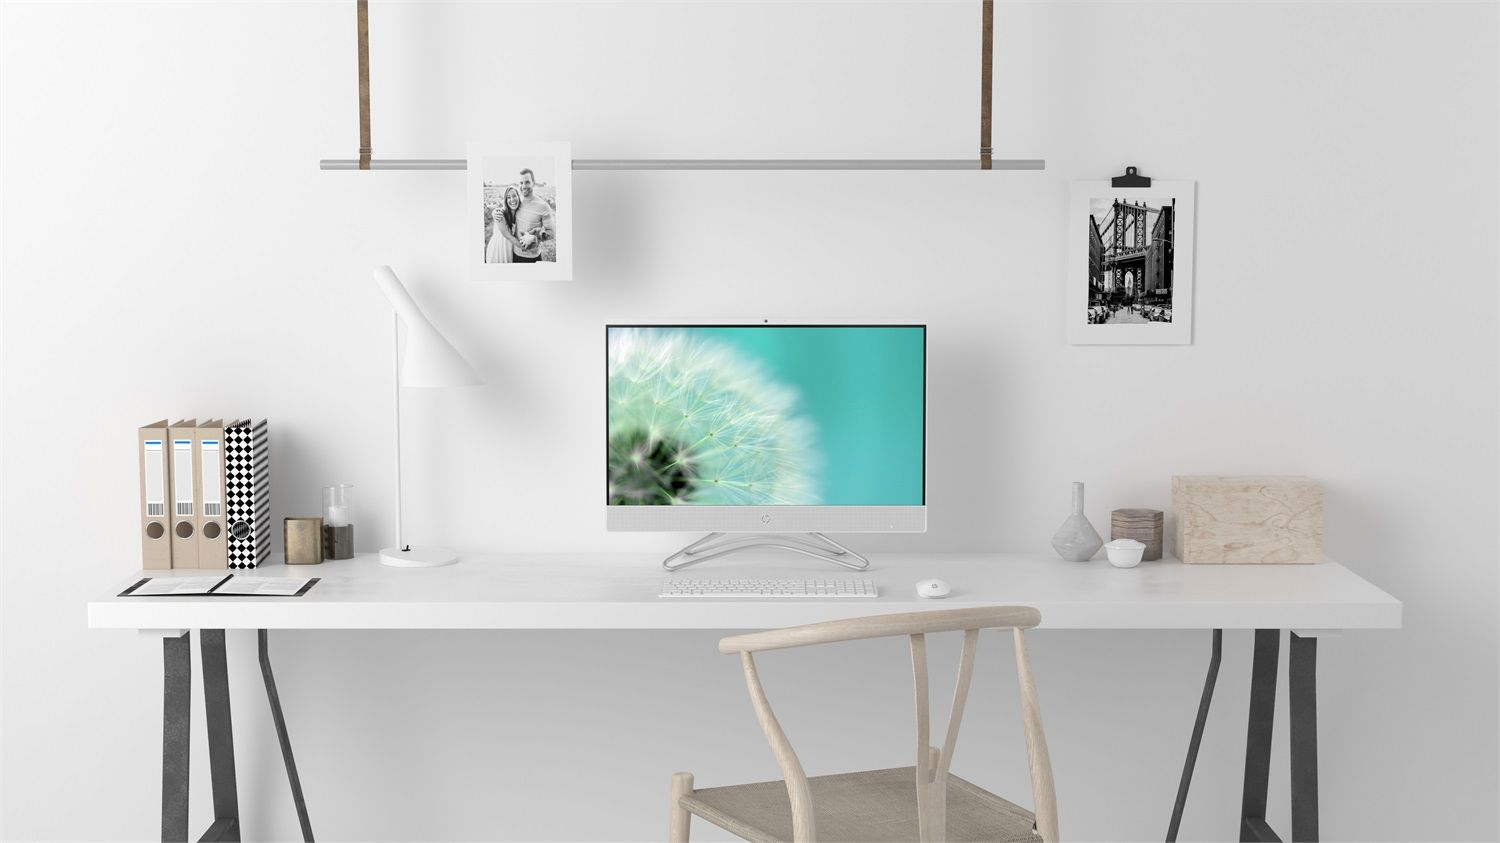 HP All-in-One 200 G3 (3VA53EA)